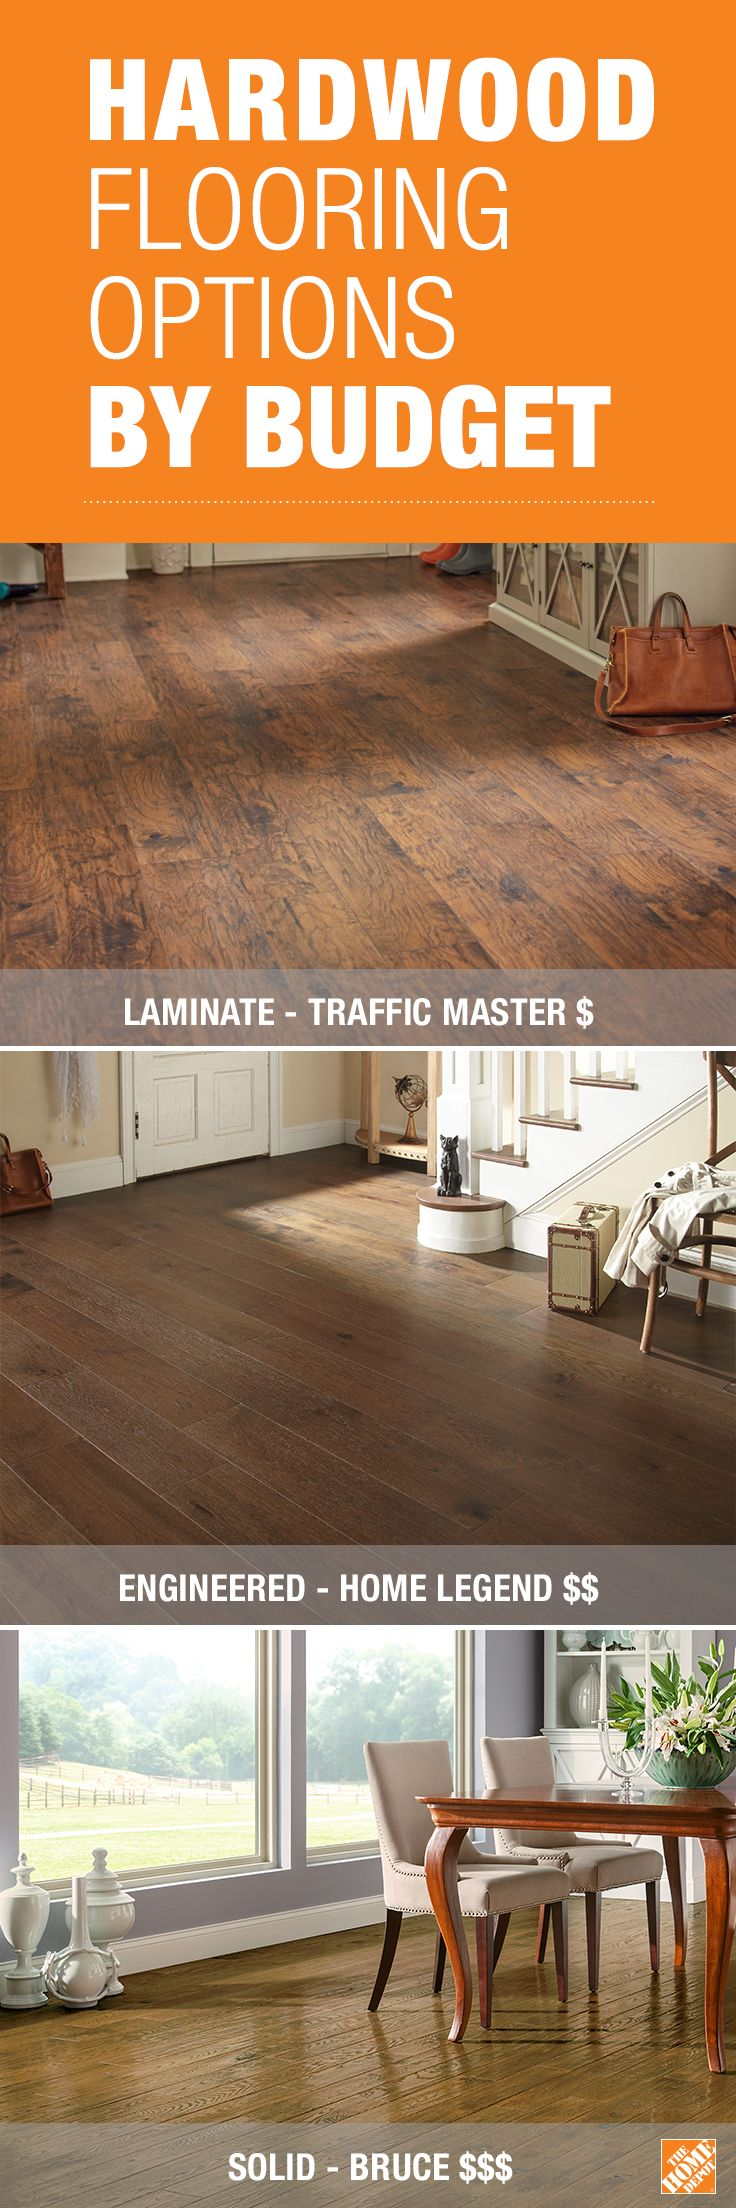 No matter your budget with todayus flooring you have several good